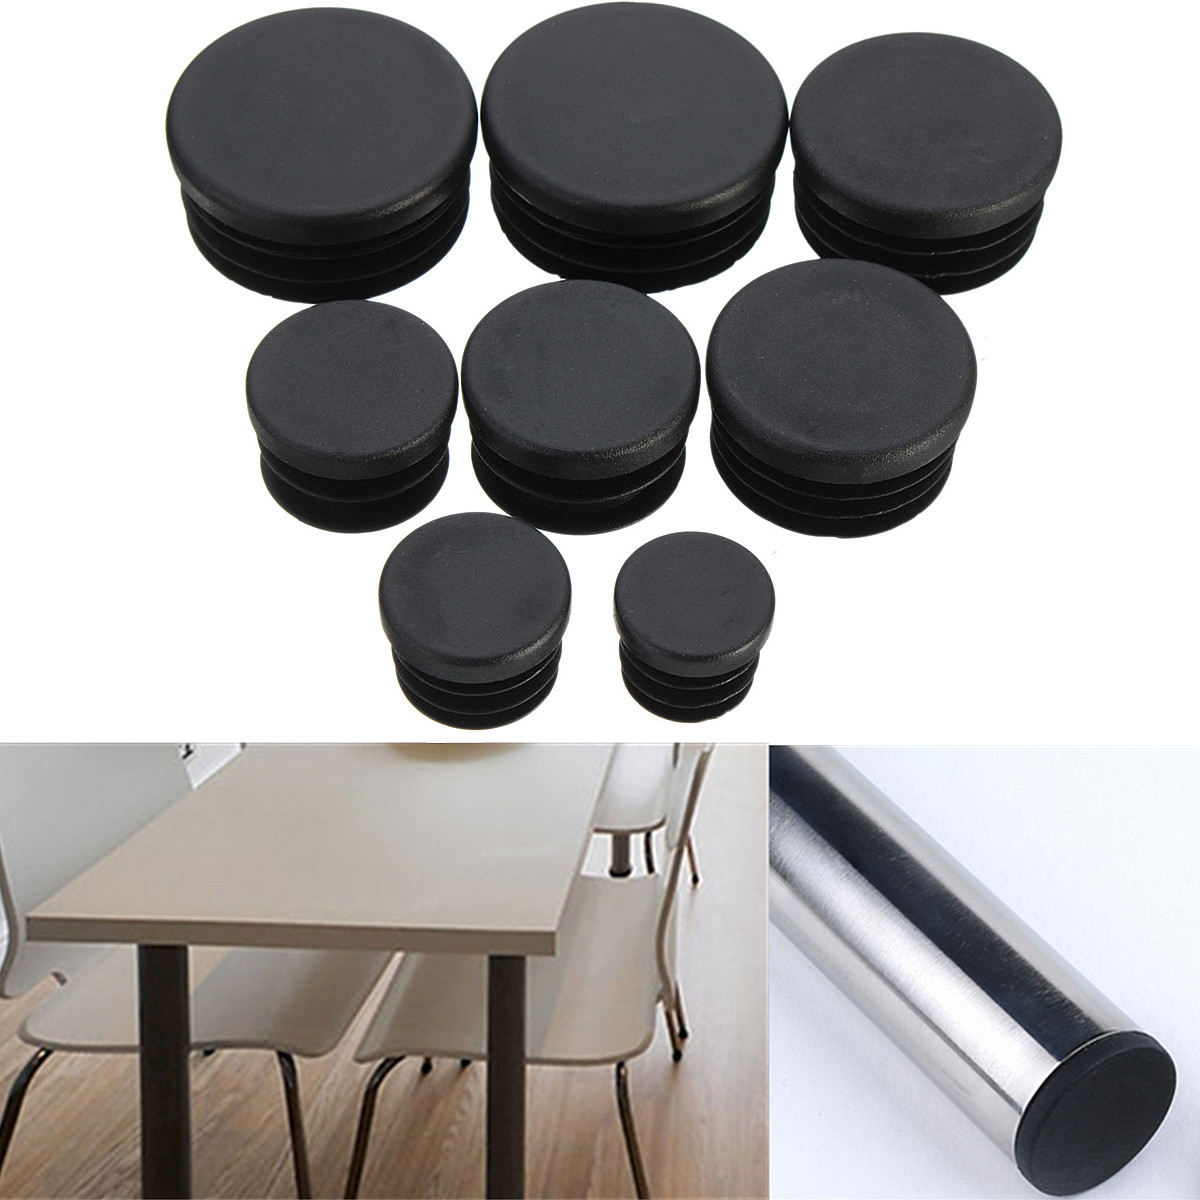 10pcs Round Plastic End Caps Insert Plugs 8 Sizes 16-35mm Furniture Leg Pipe Tube Plugs Black Furniture Accessories